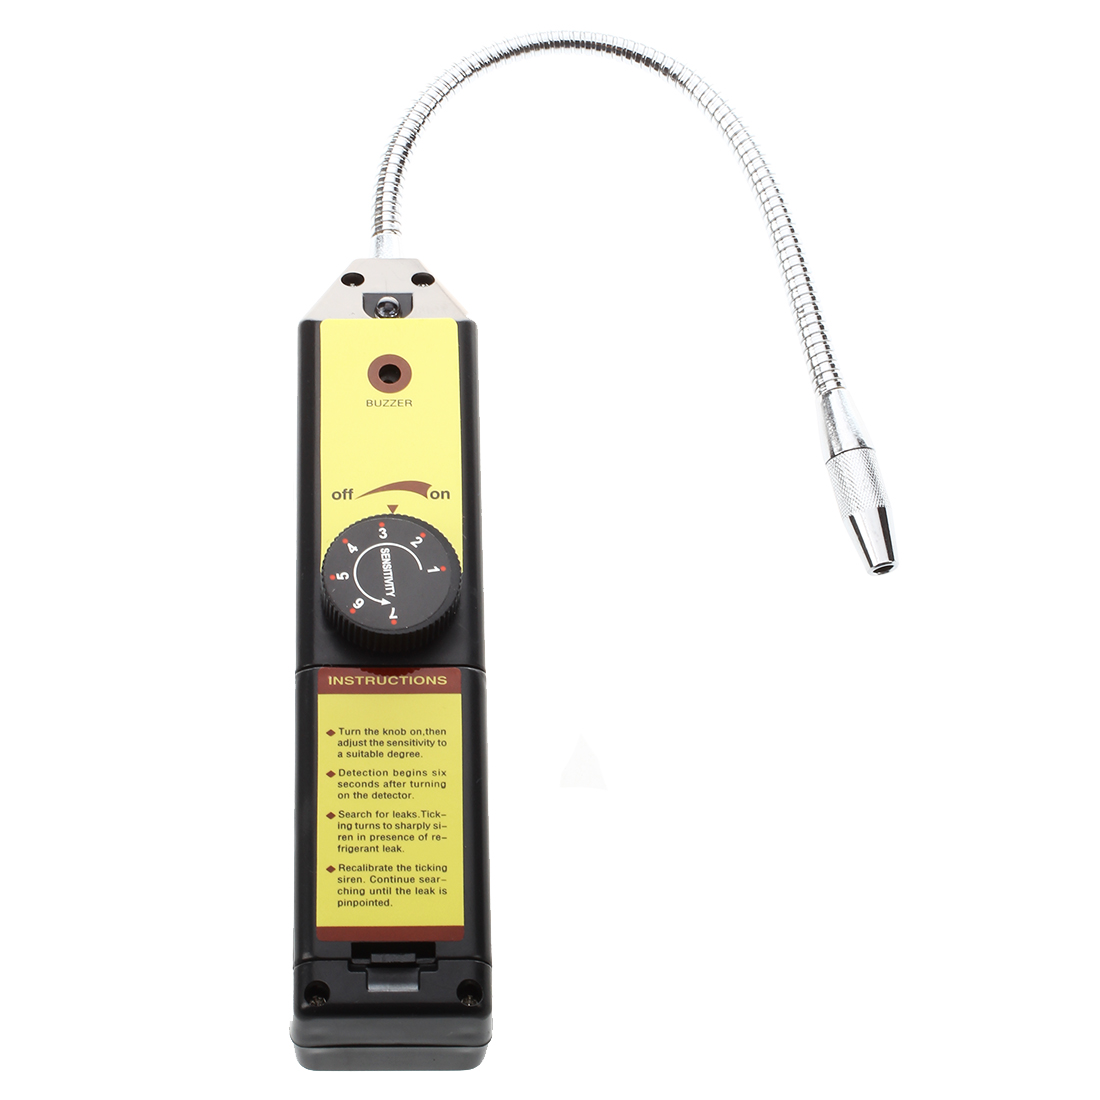 New Freon Automatic Halogen Leak Detector R134a R410a R22a Air Conditioning HVAC